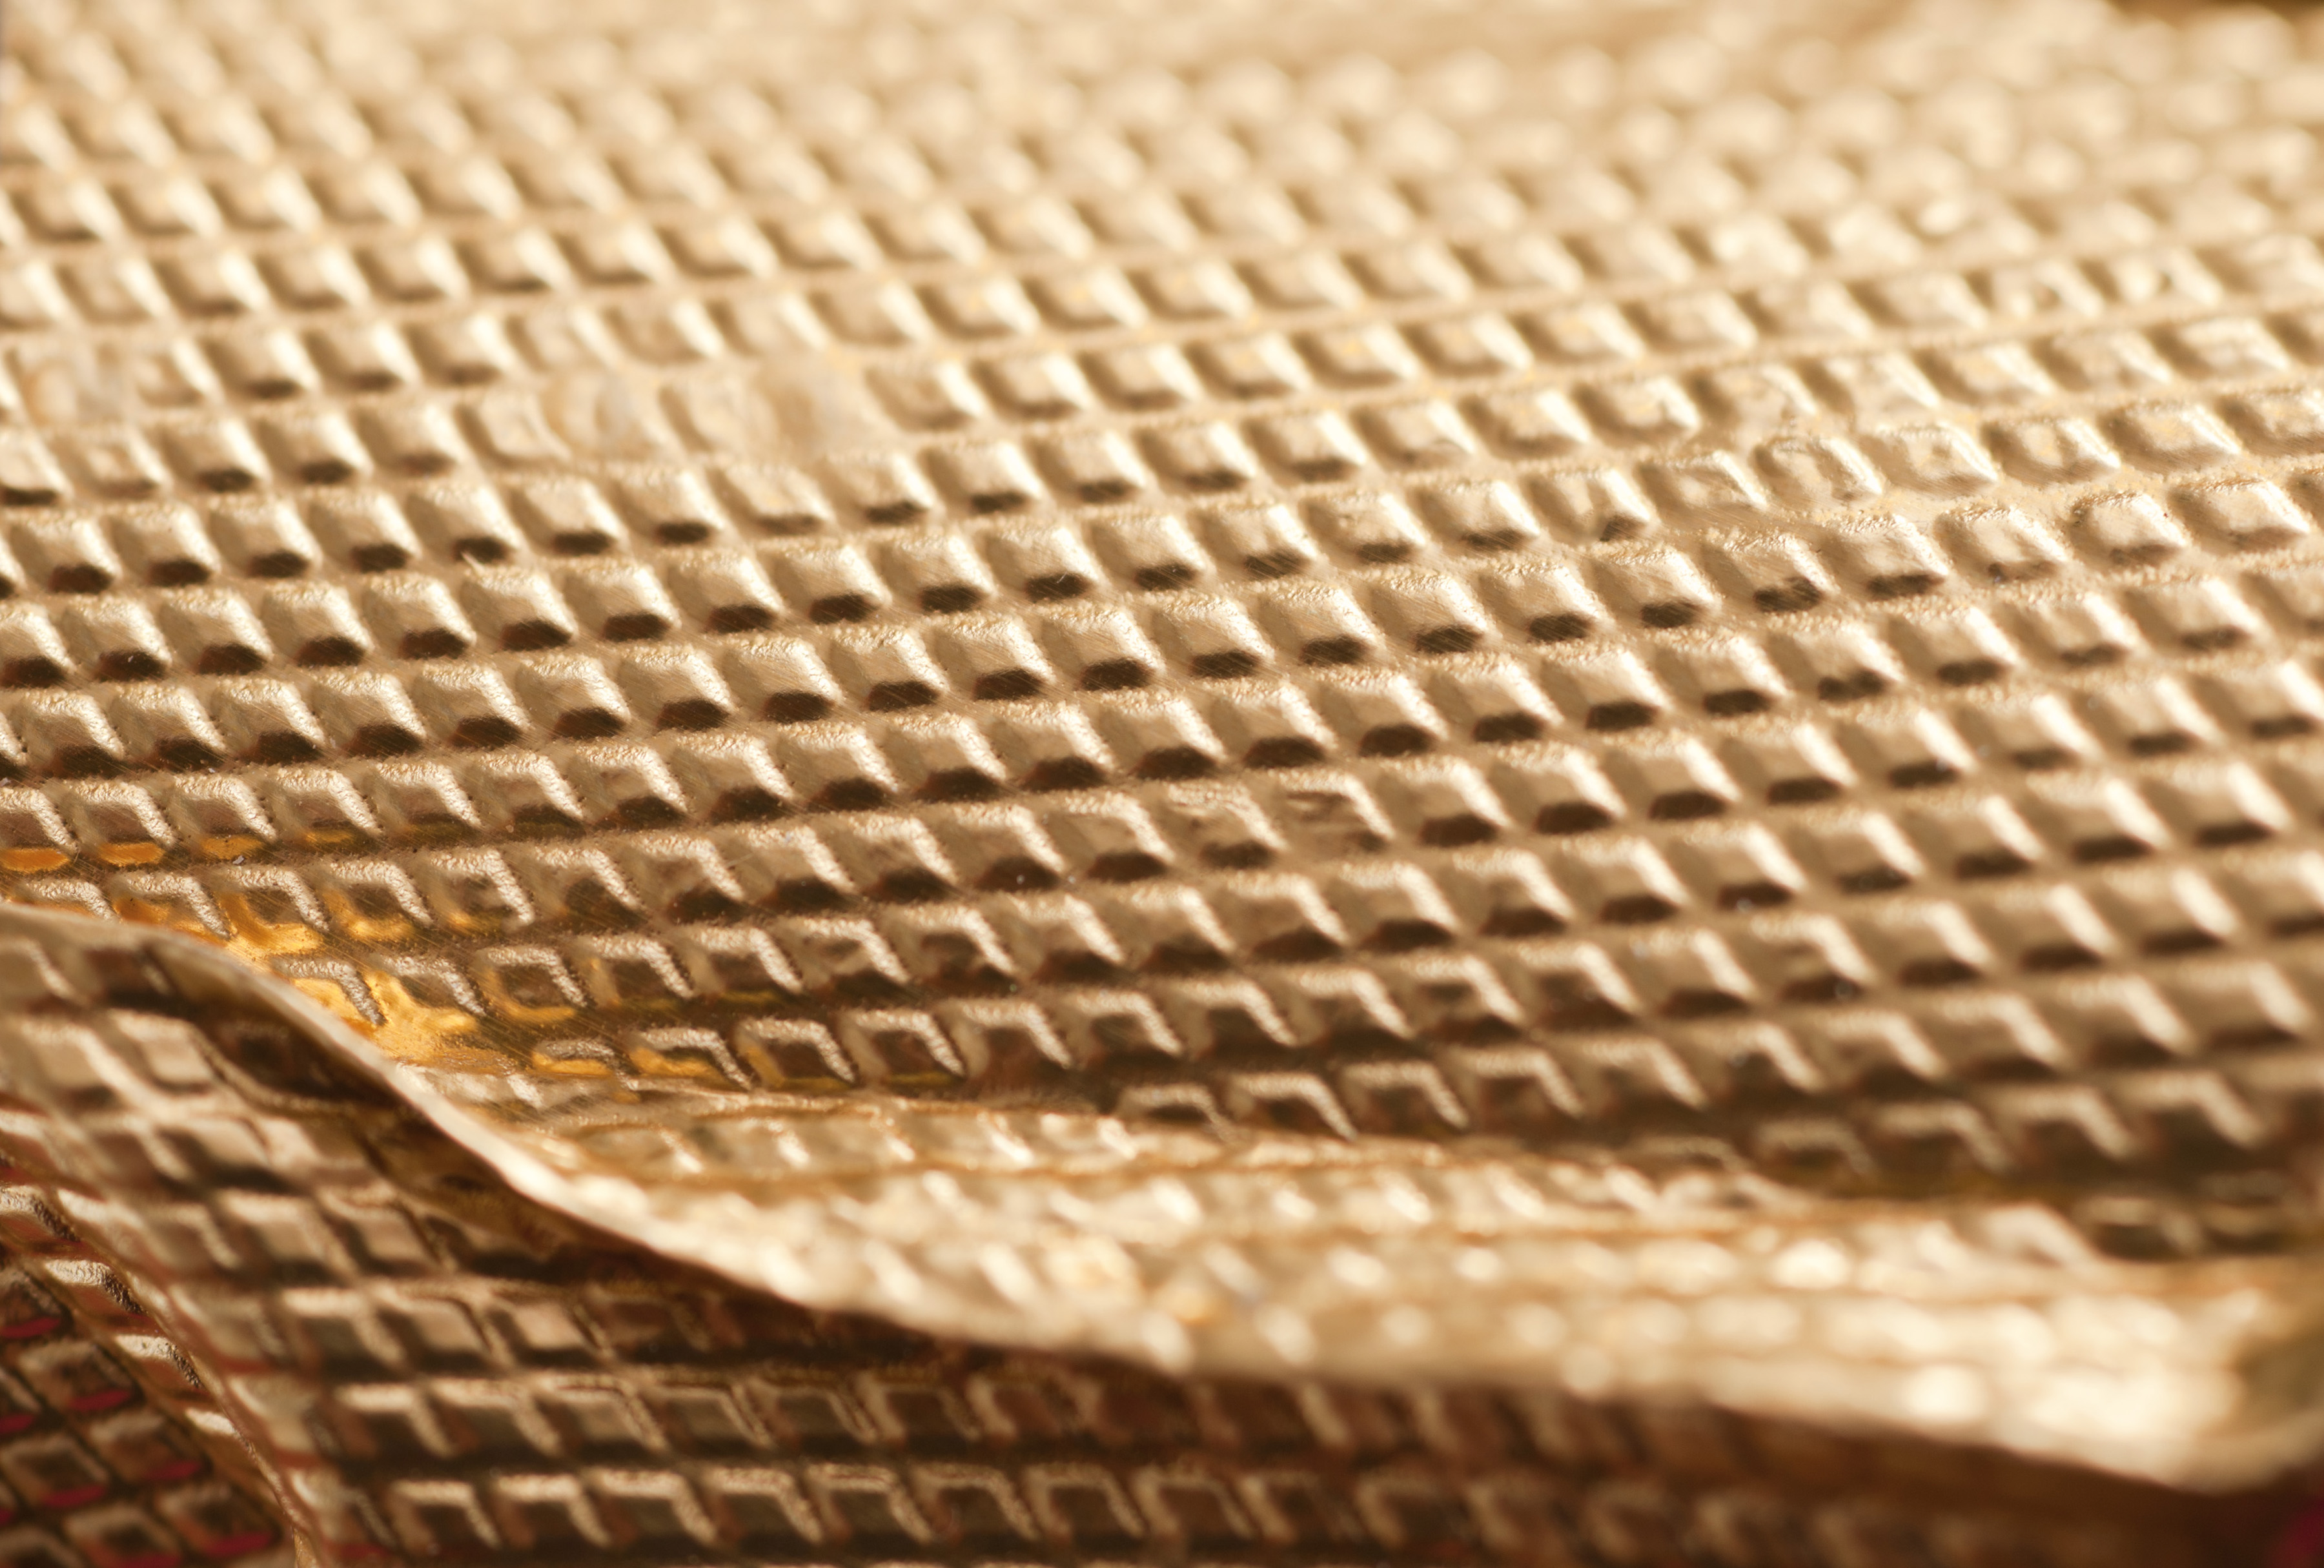 Extreme Close Up of Golden Textured Foil Wrapper from Champagne Bottle, Full Frame Background Image